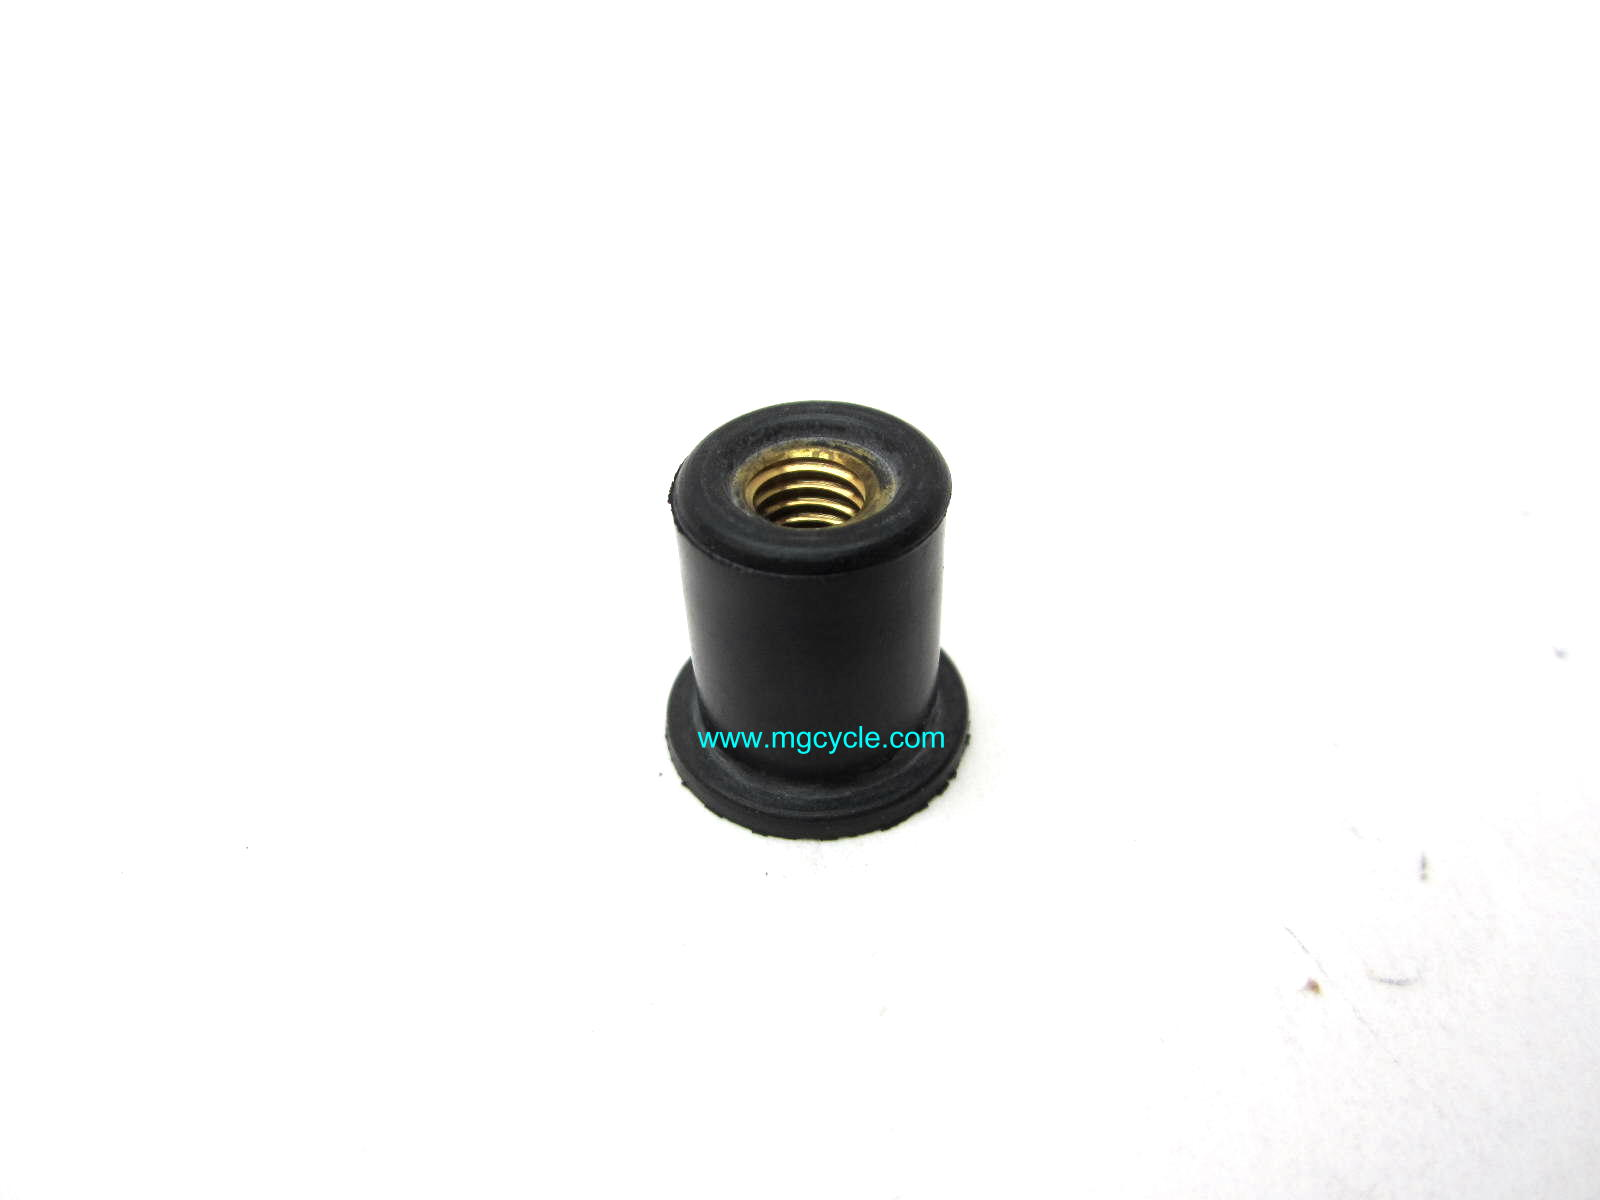 Rubber isolator well nut, body panels, frame rail covers